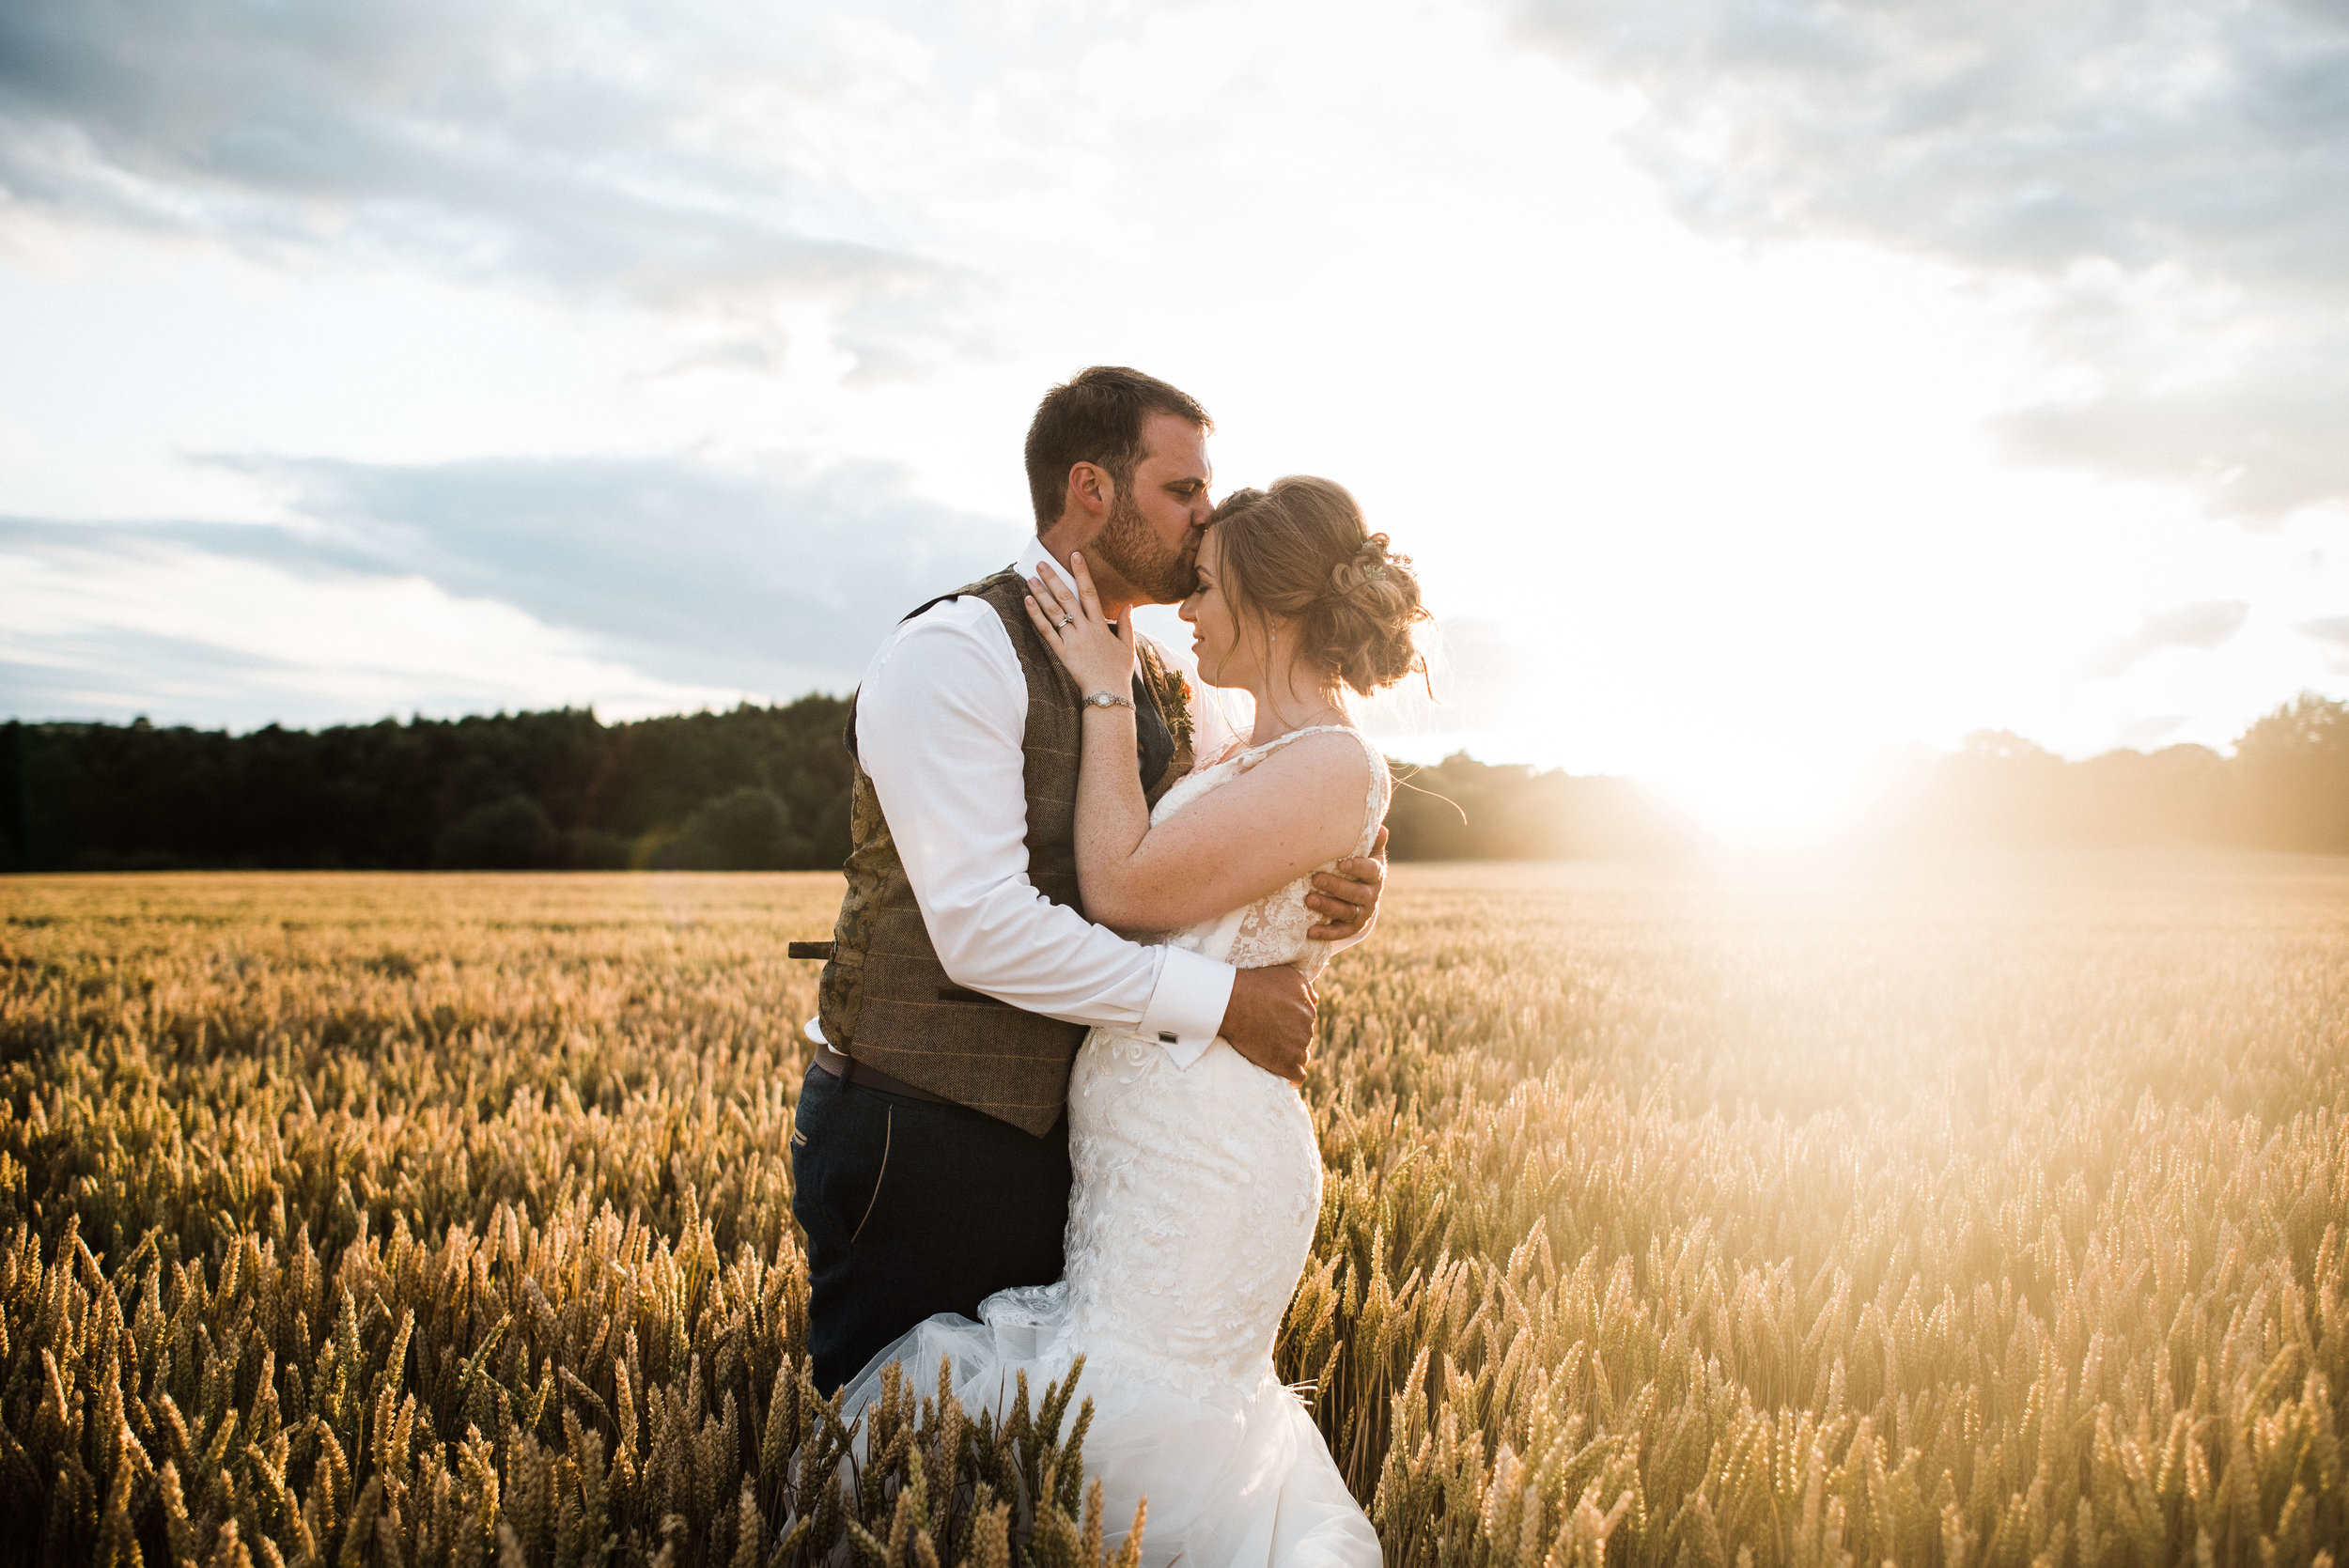 natural, relaxed and fun - we're really easy-going and aim to have a laugh with you on your wedding day, keeping you at ease and making beautiful natural photos that truly reflect your day